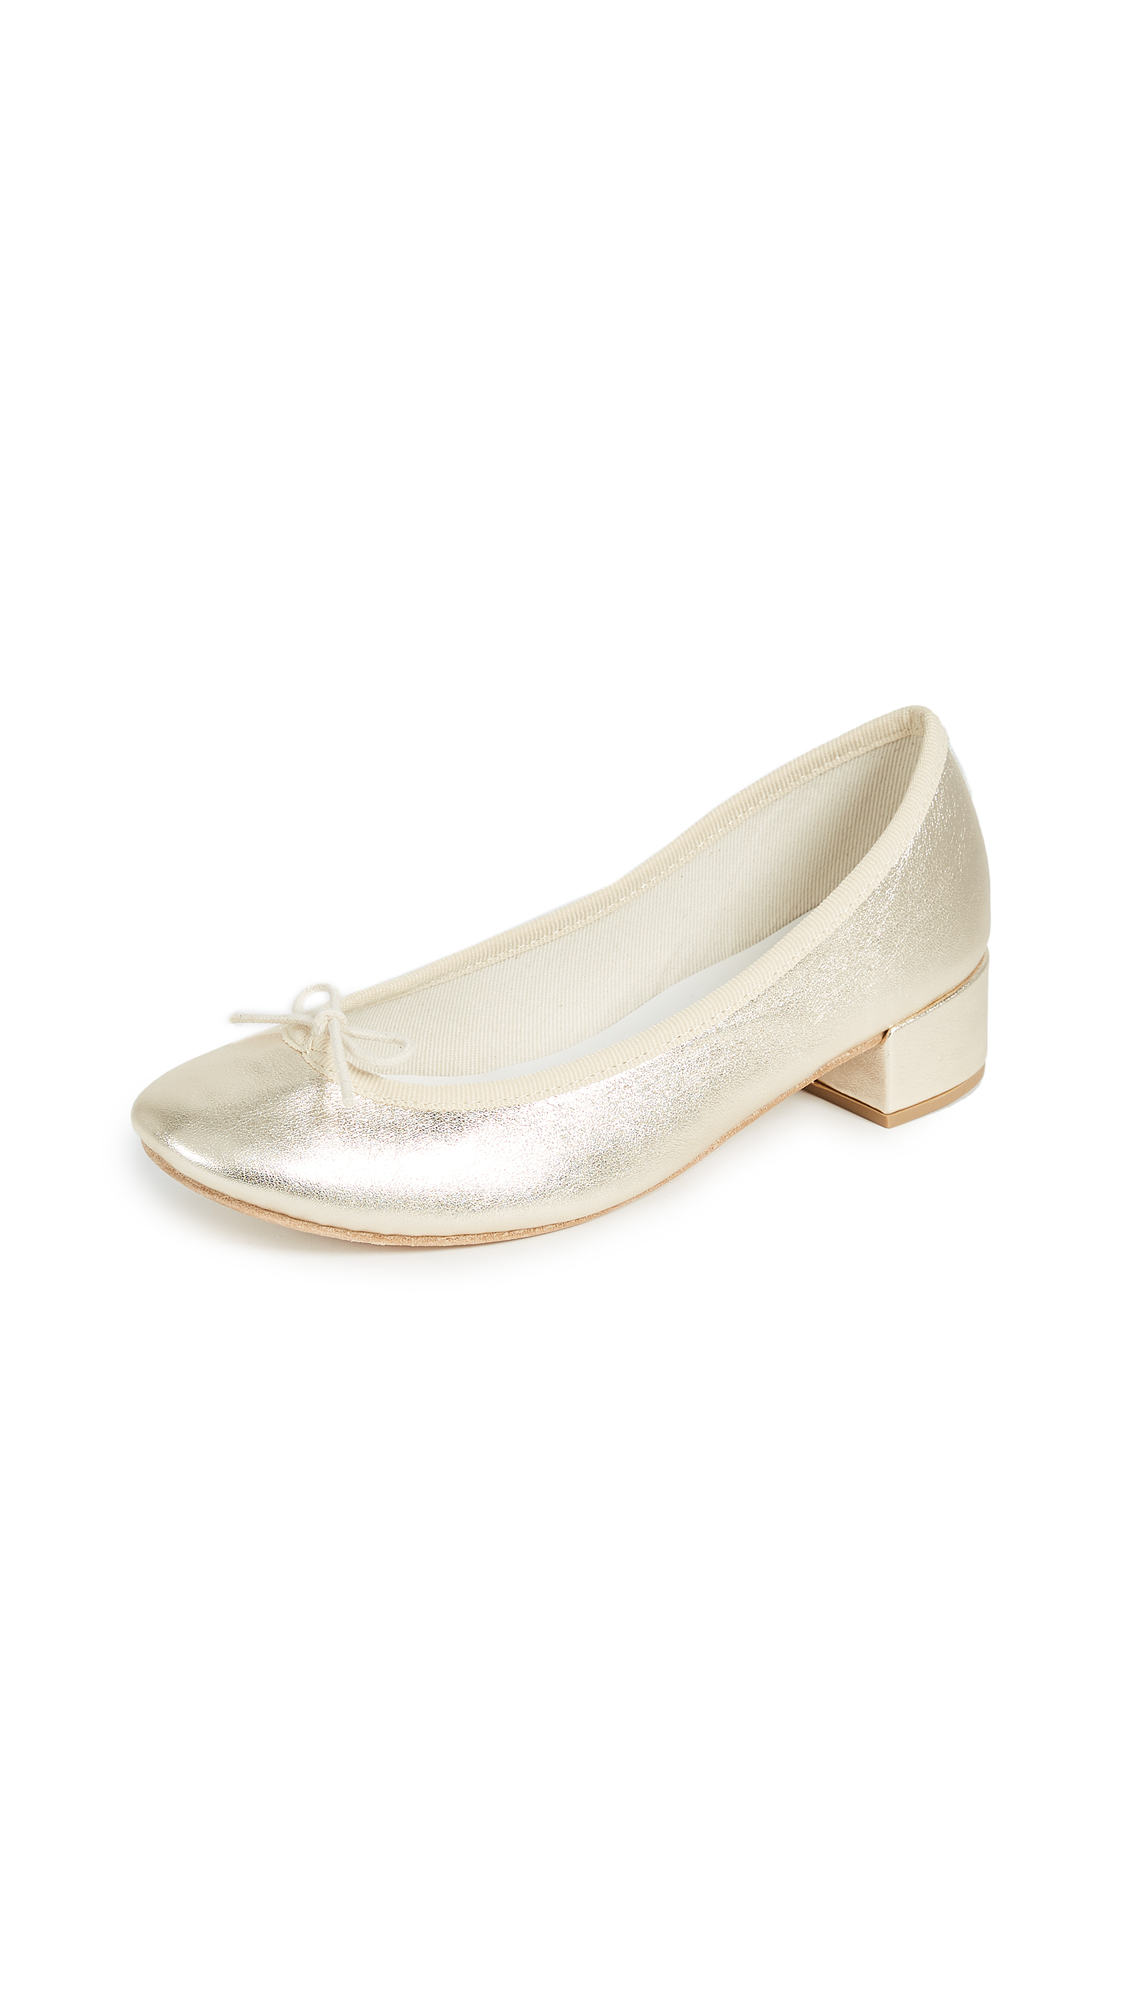 Repetto Camille Ballerina Heels - Light Gold